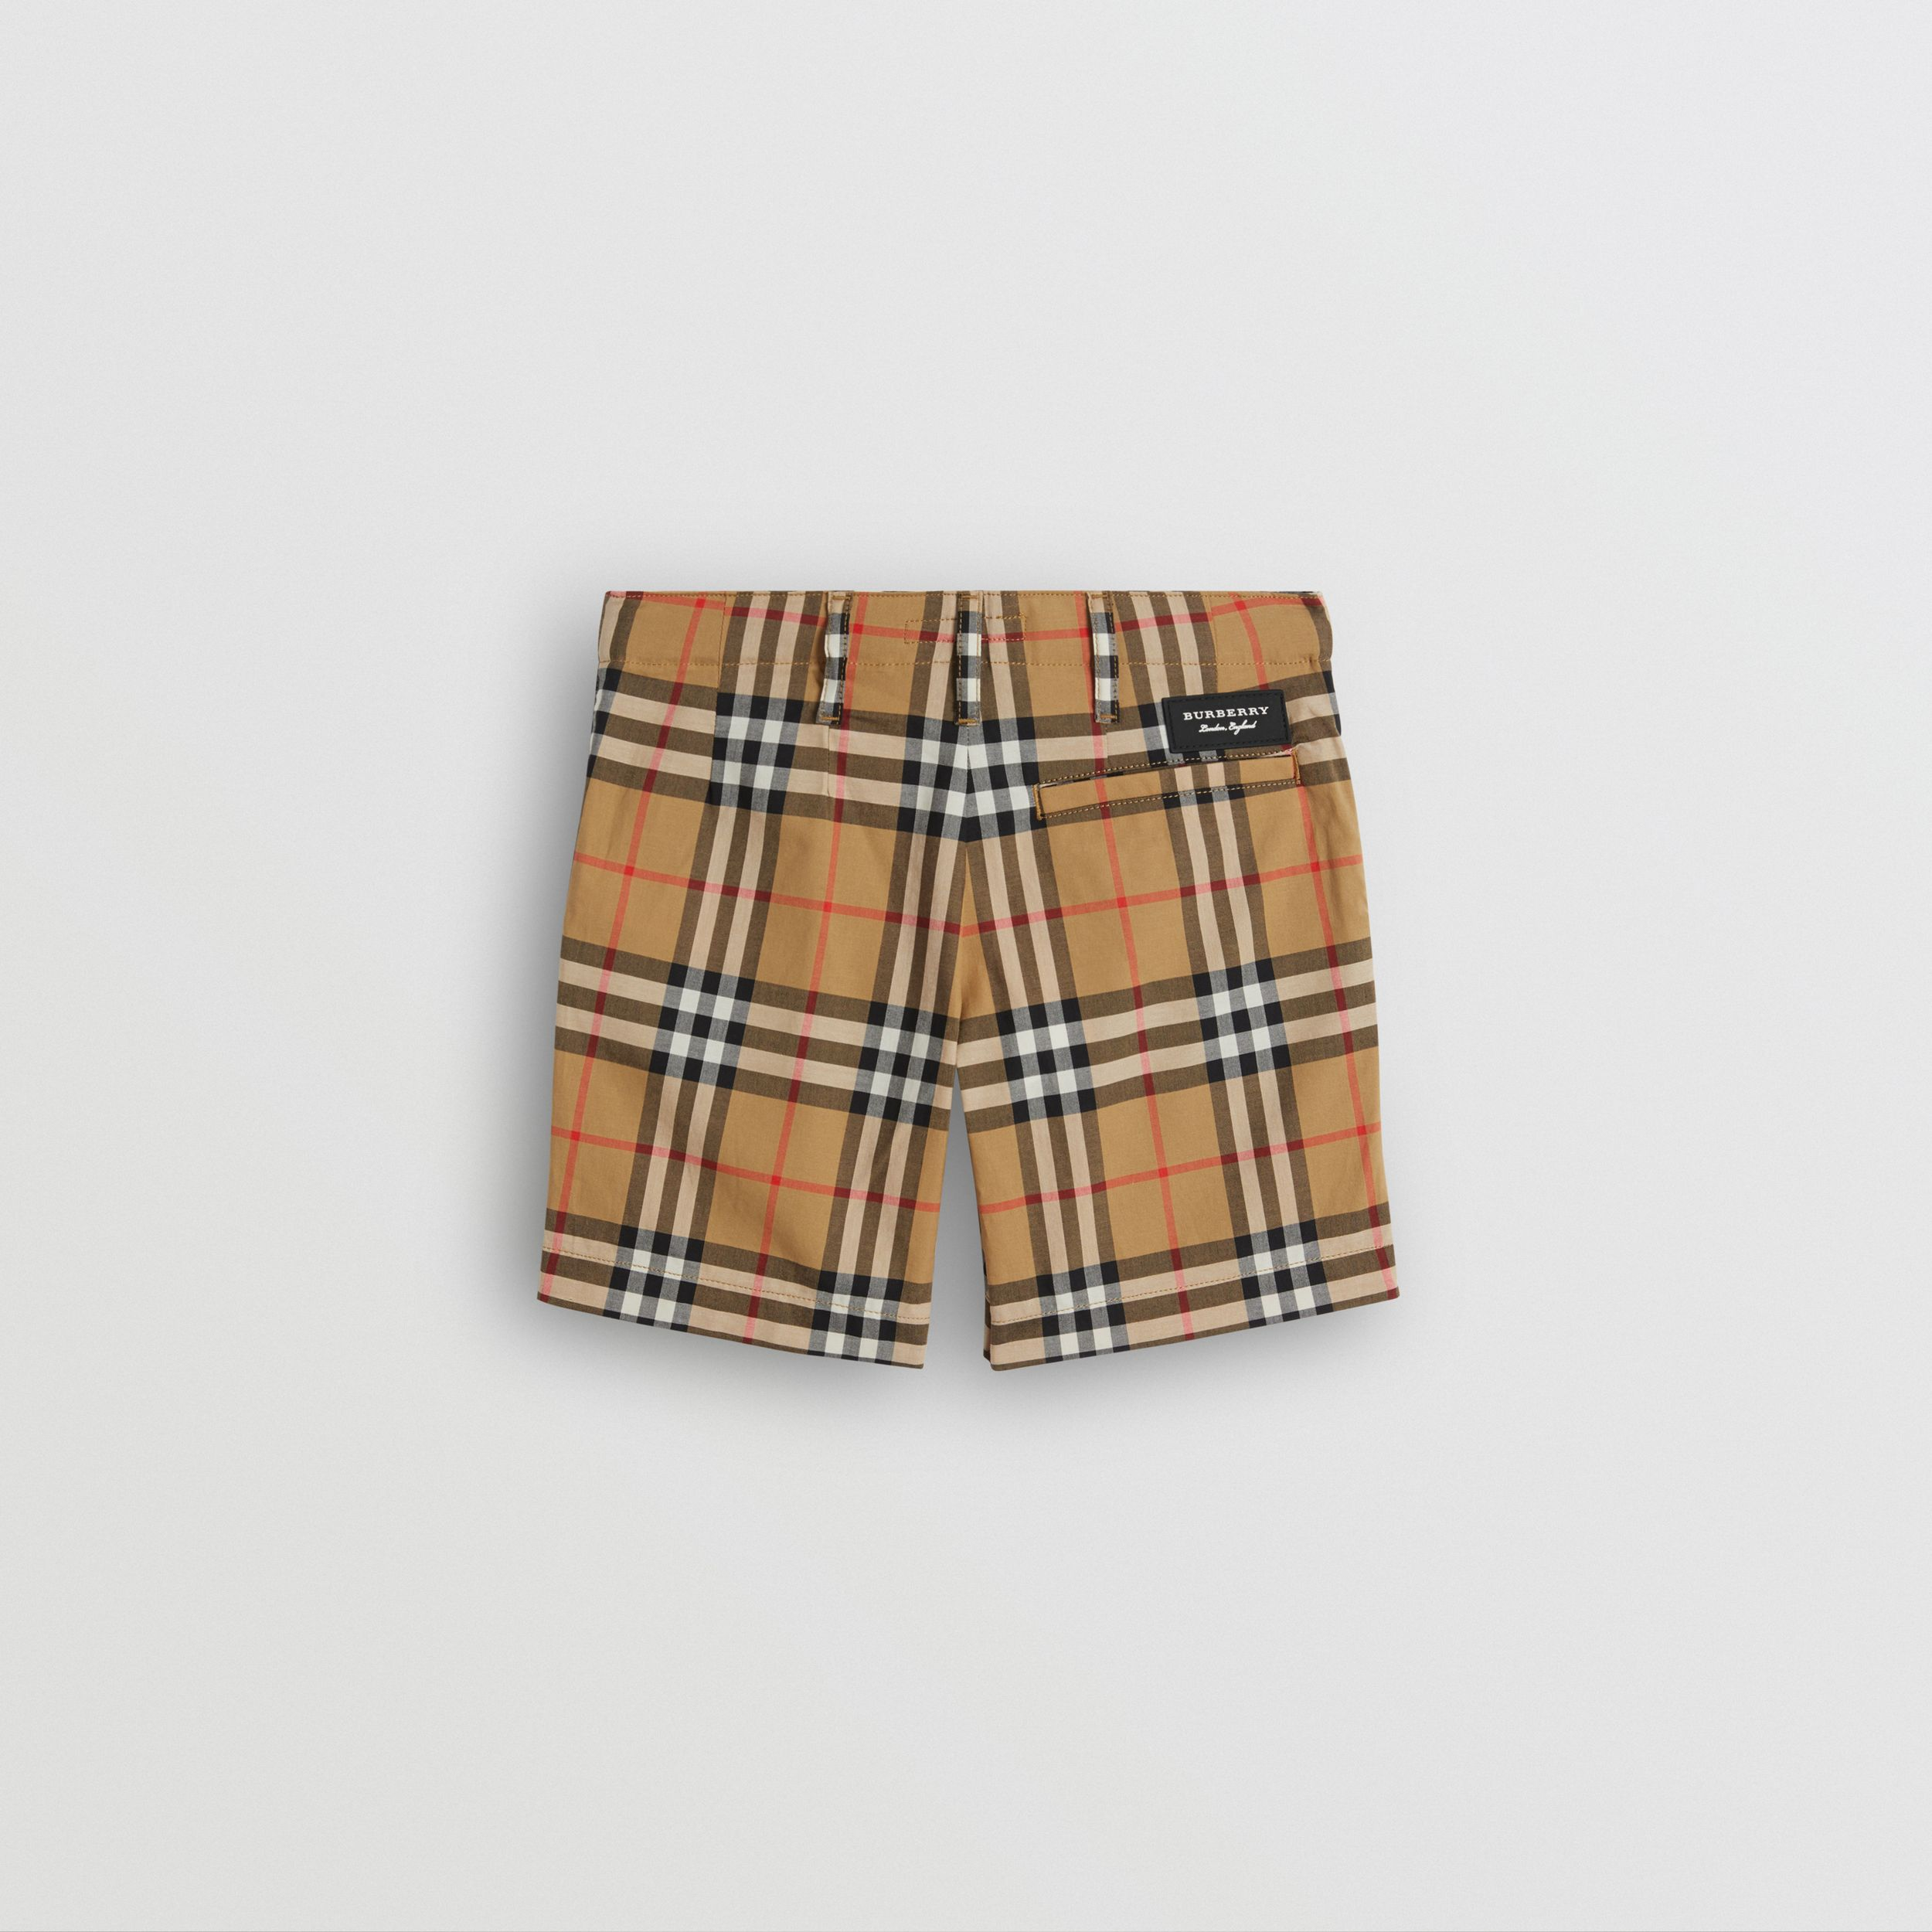 Vintage Check Cotton Tailored Shorts in Antique Yellow | Burberry - 4